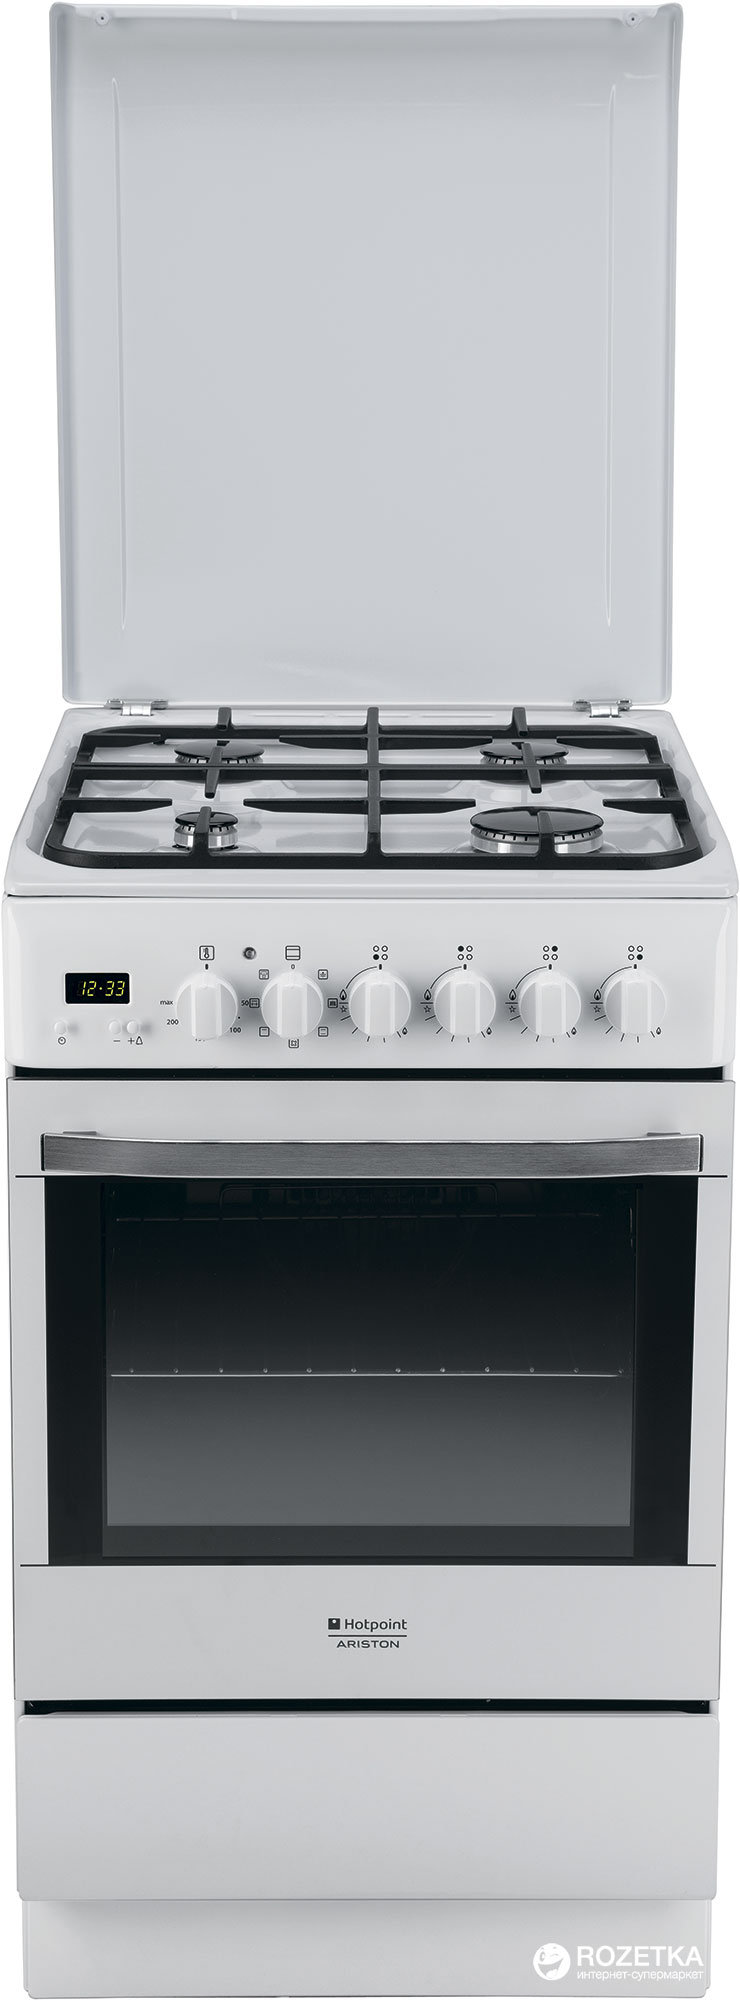 Hotpoint-ariston c34sg37(w)ru/ha инструкция, характеристики, форум.